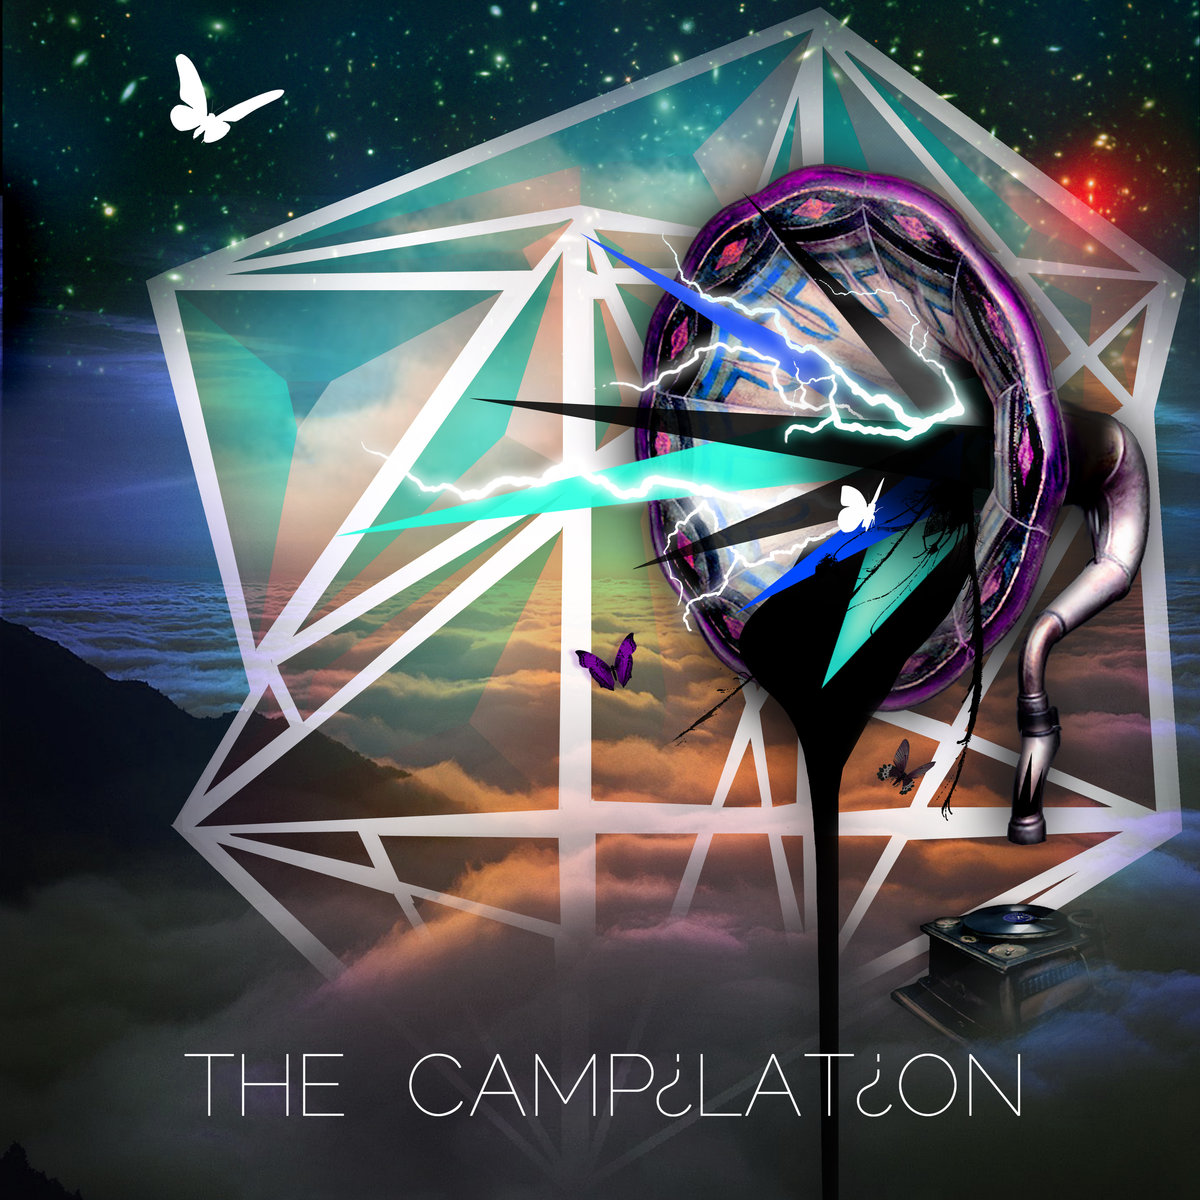 Love & Light - How Many Lick's? @ 'Various Artists - The Campilation' album (electronic, dubstep)